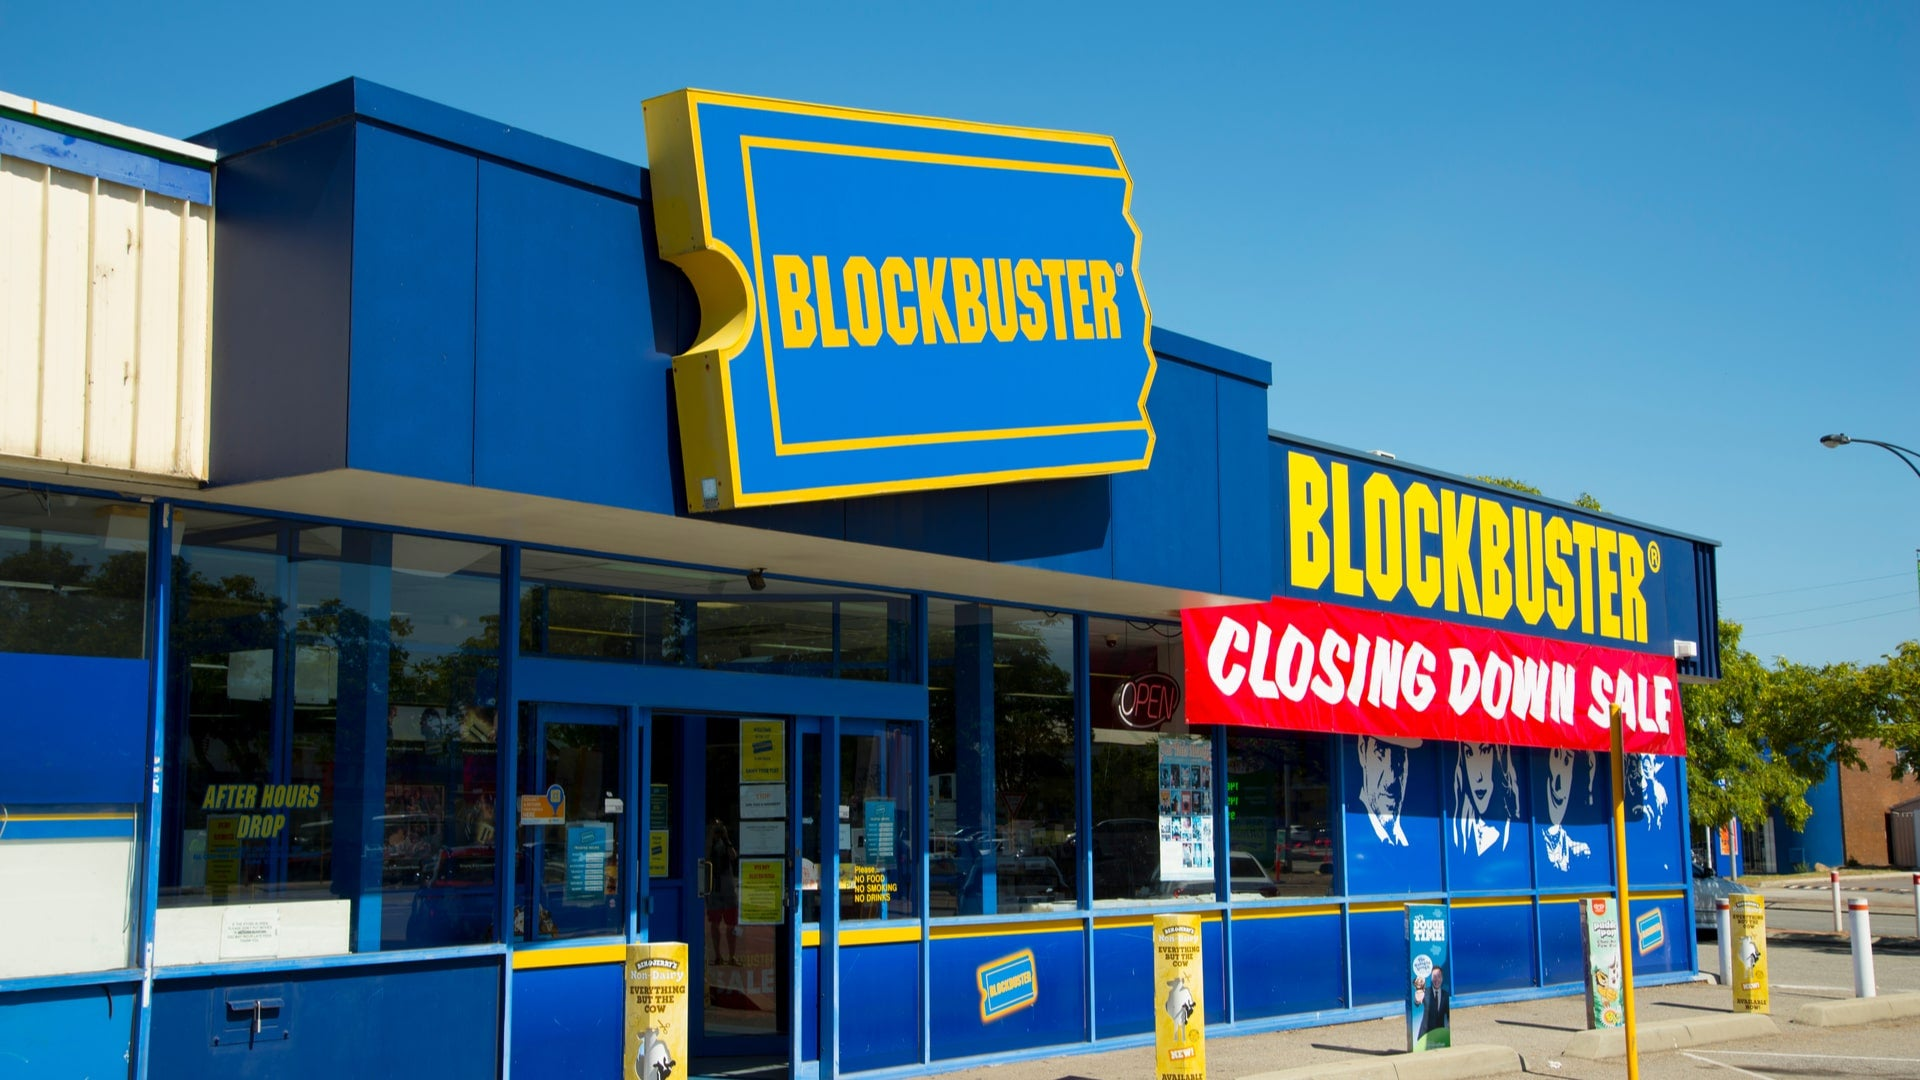 Blockbuster closing down-min.jpg